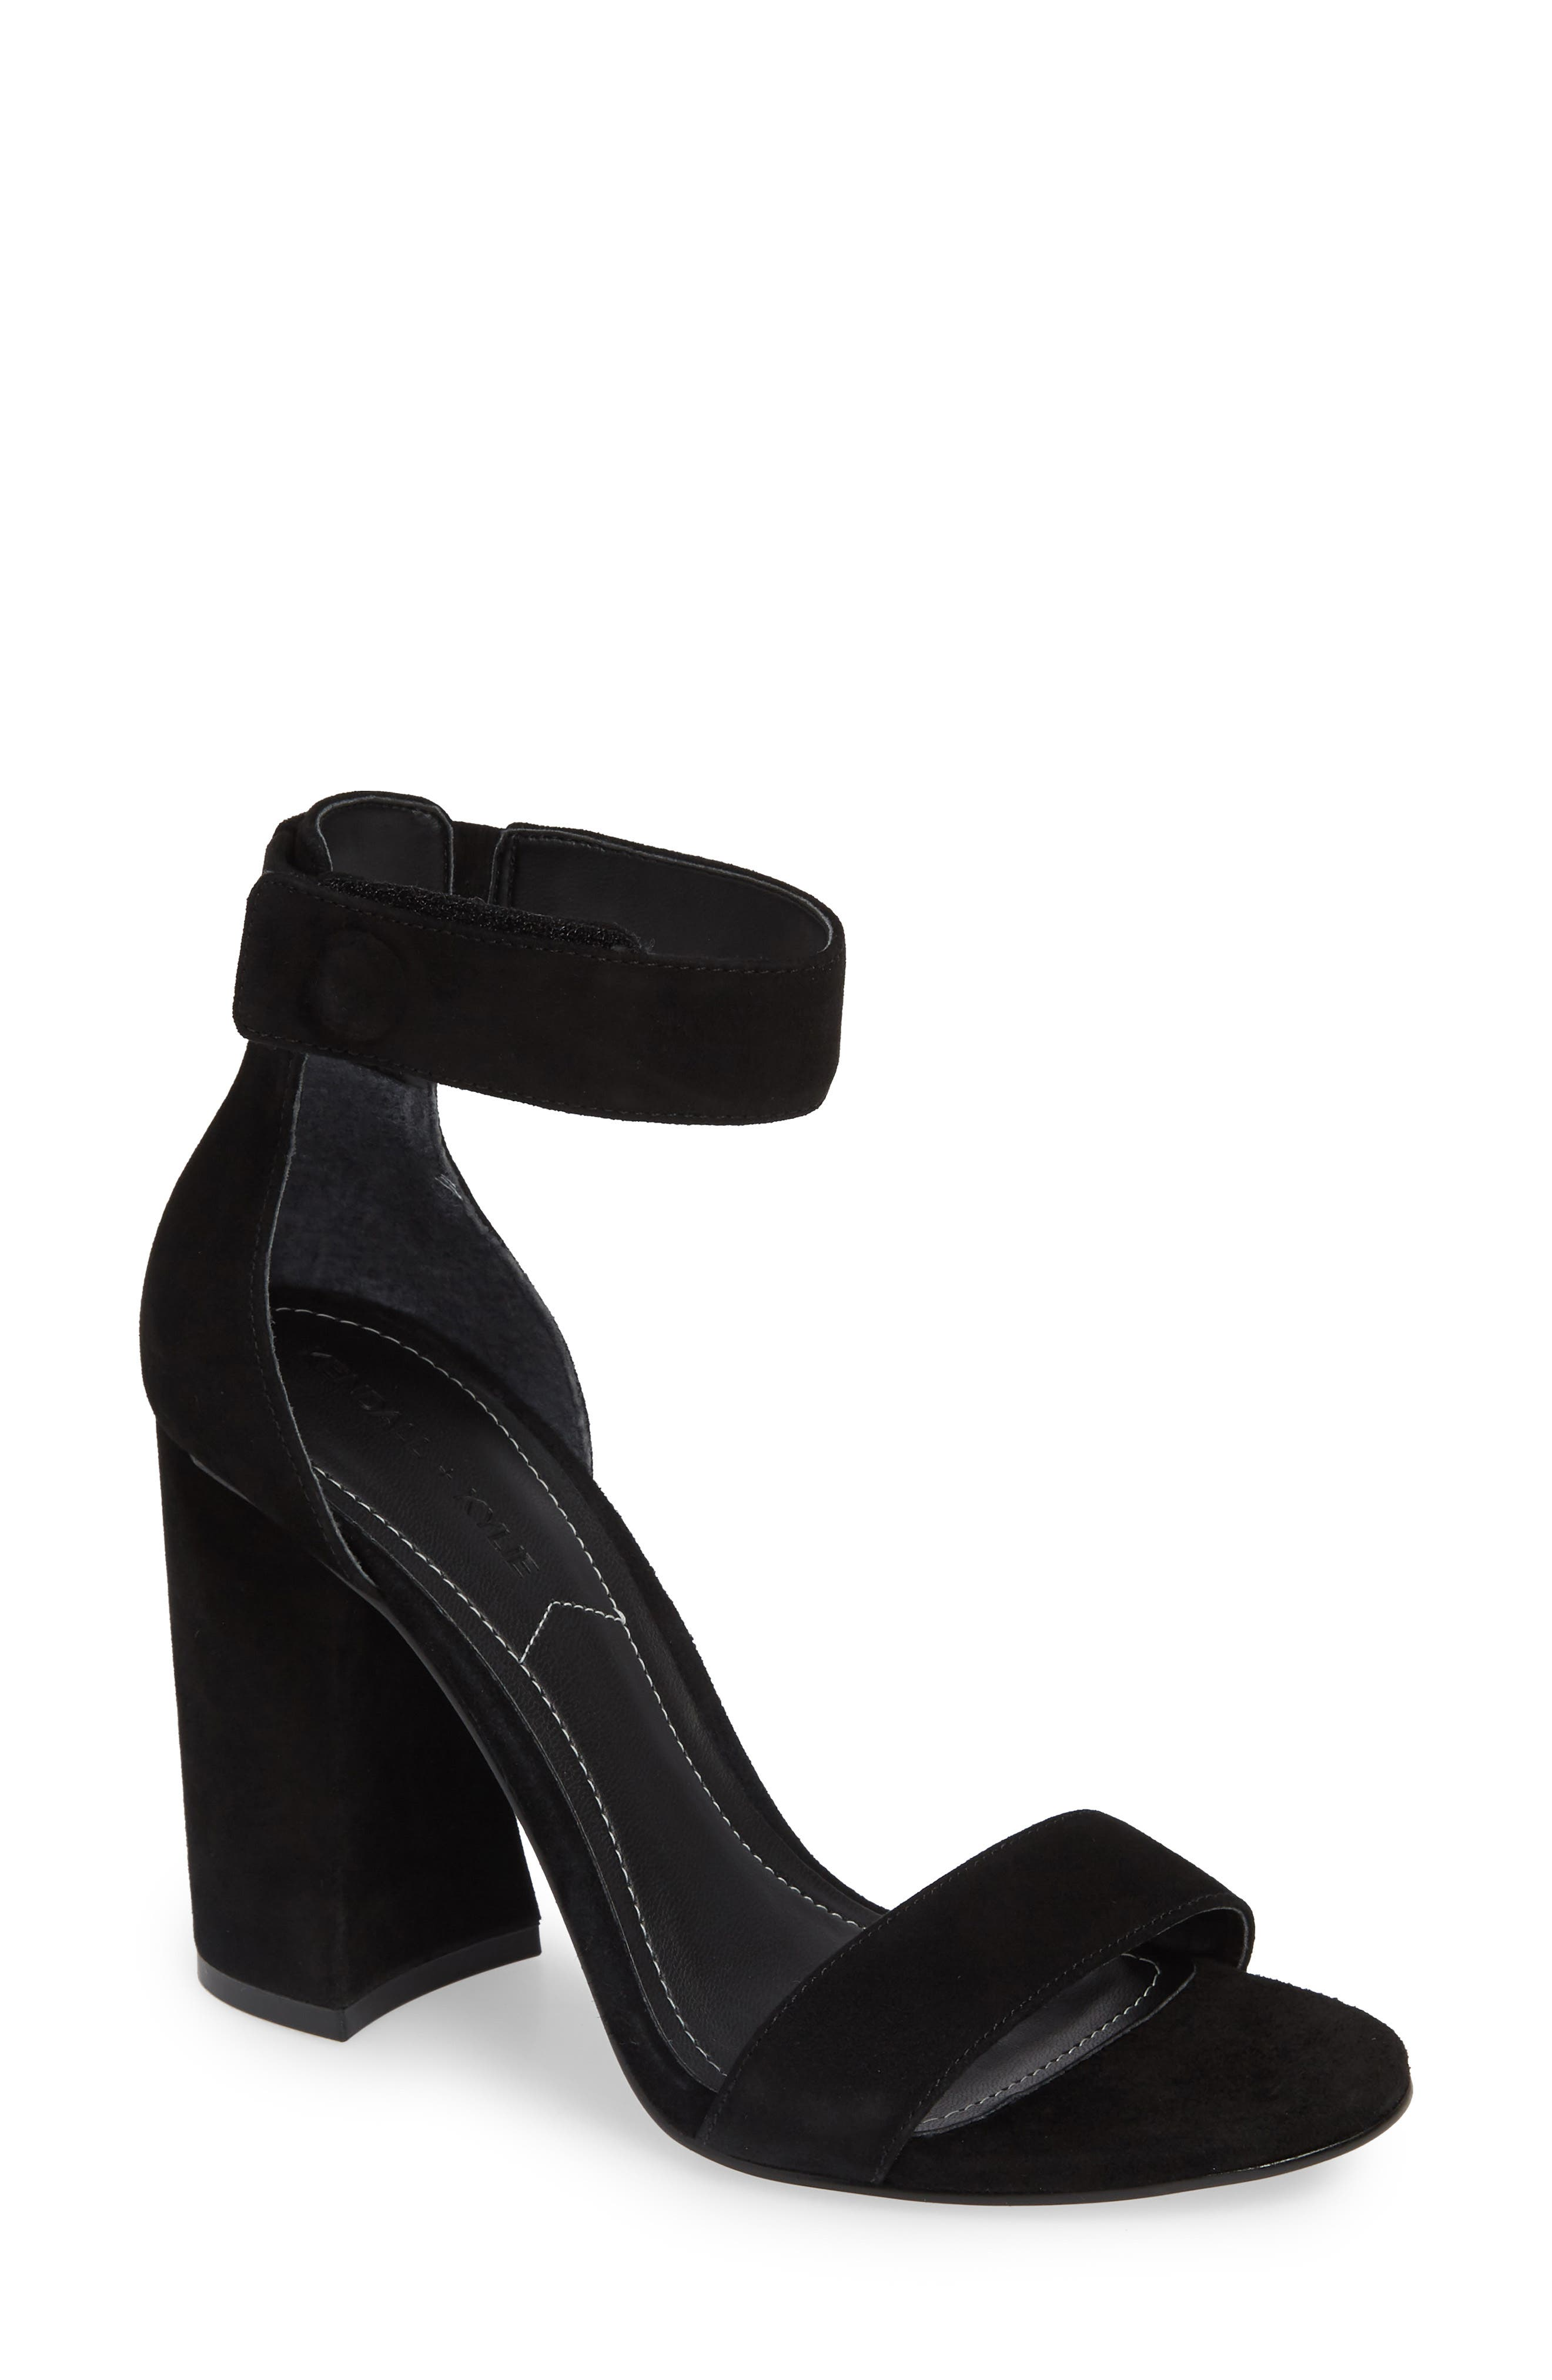 1cac620f9a422f Women s KENDALL + KYLIE Sandals